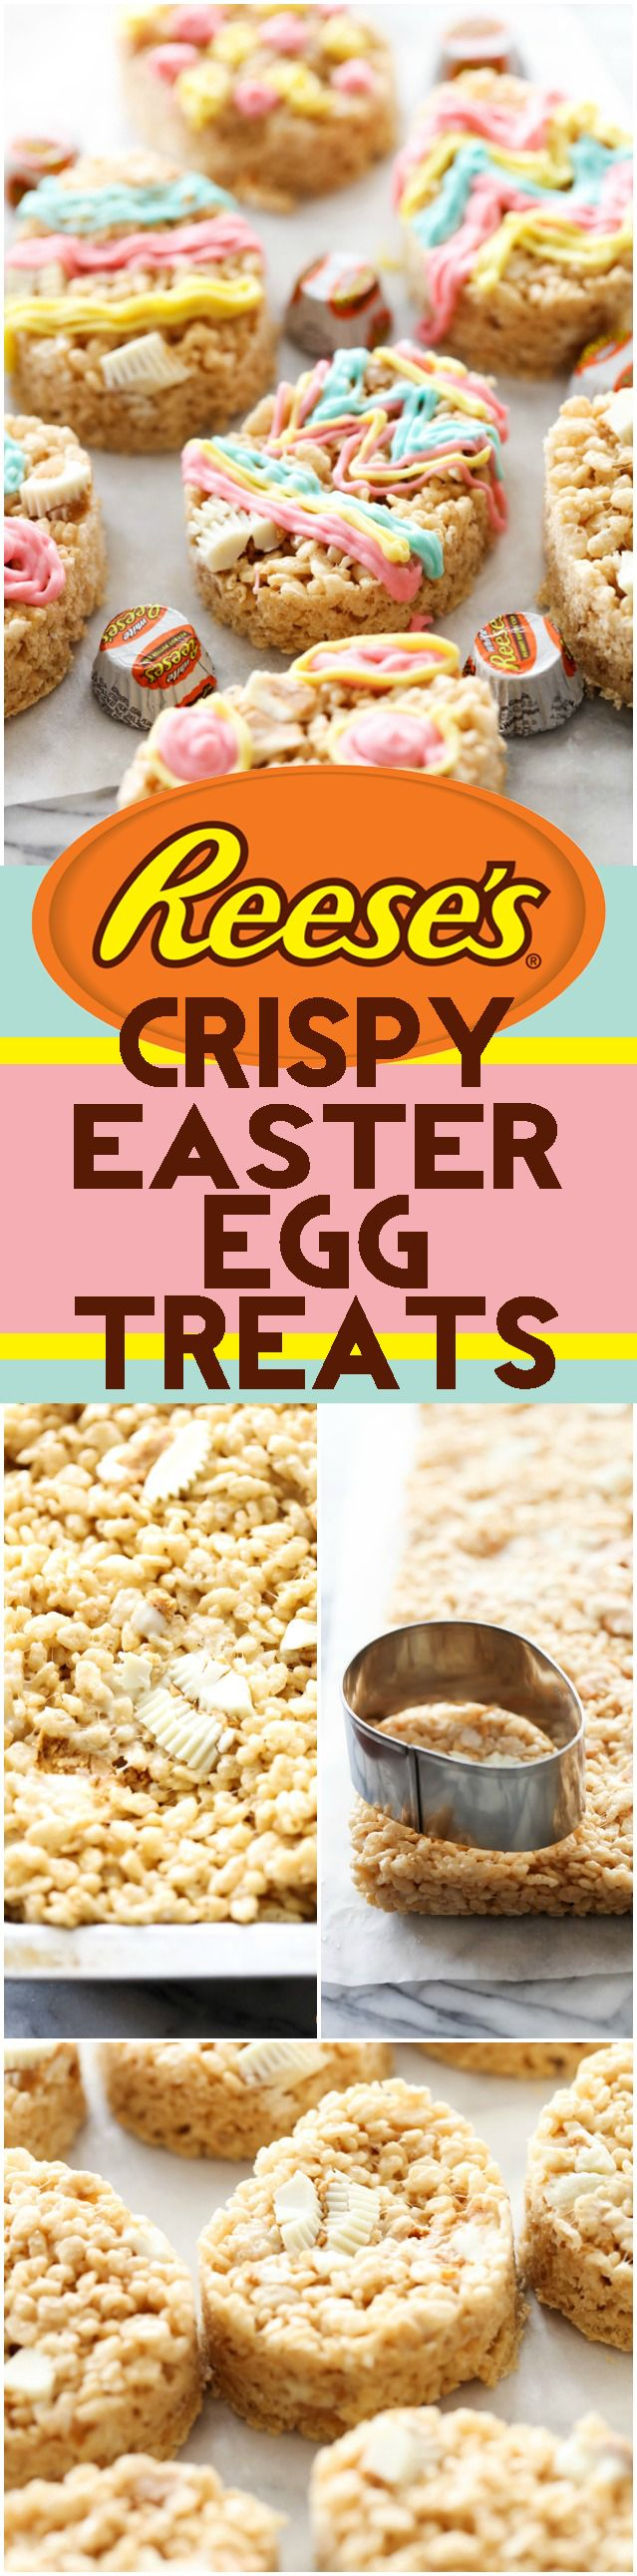 Reeses easter egg treats recipe easter egg and bright a delicious and easy treat that is fun for the whole family decorate the eggs negle Image collections